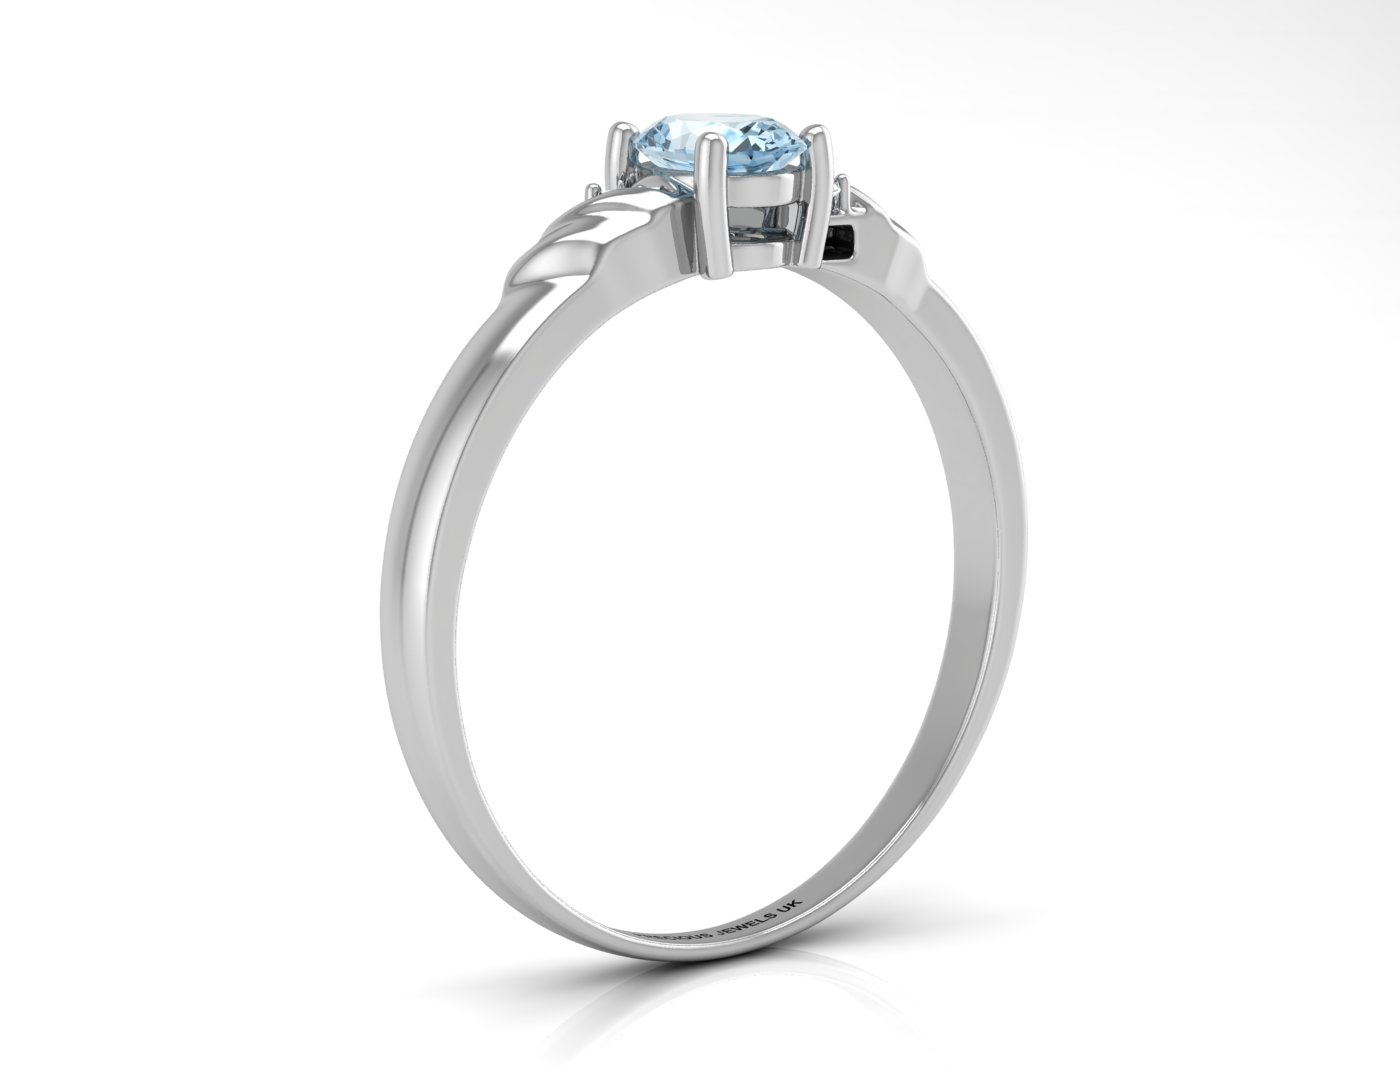 9ct White Gold Diamond And Blue Topaz Ring - Image 2 of 5